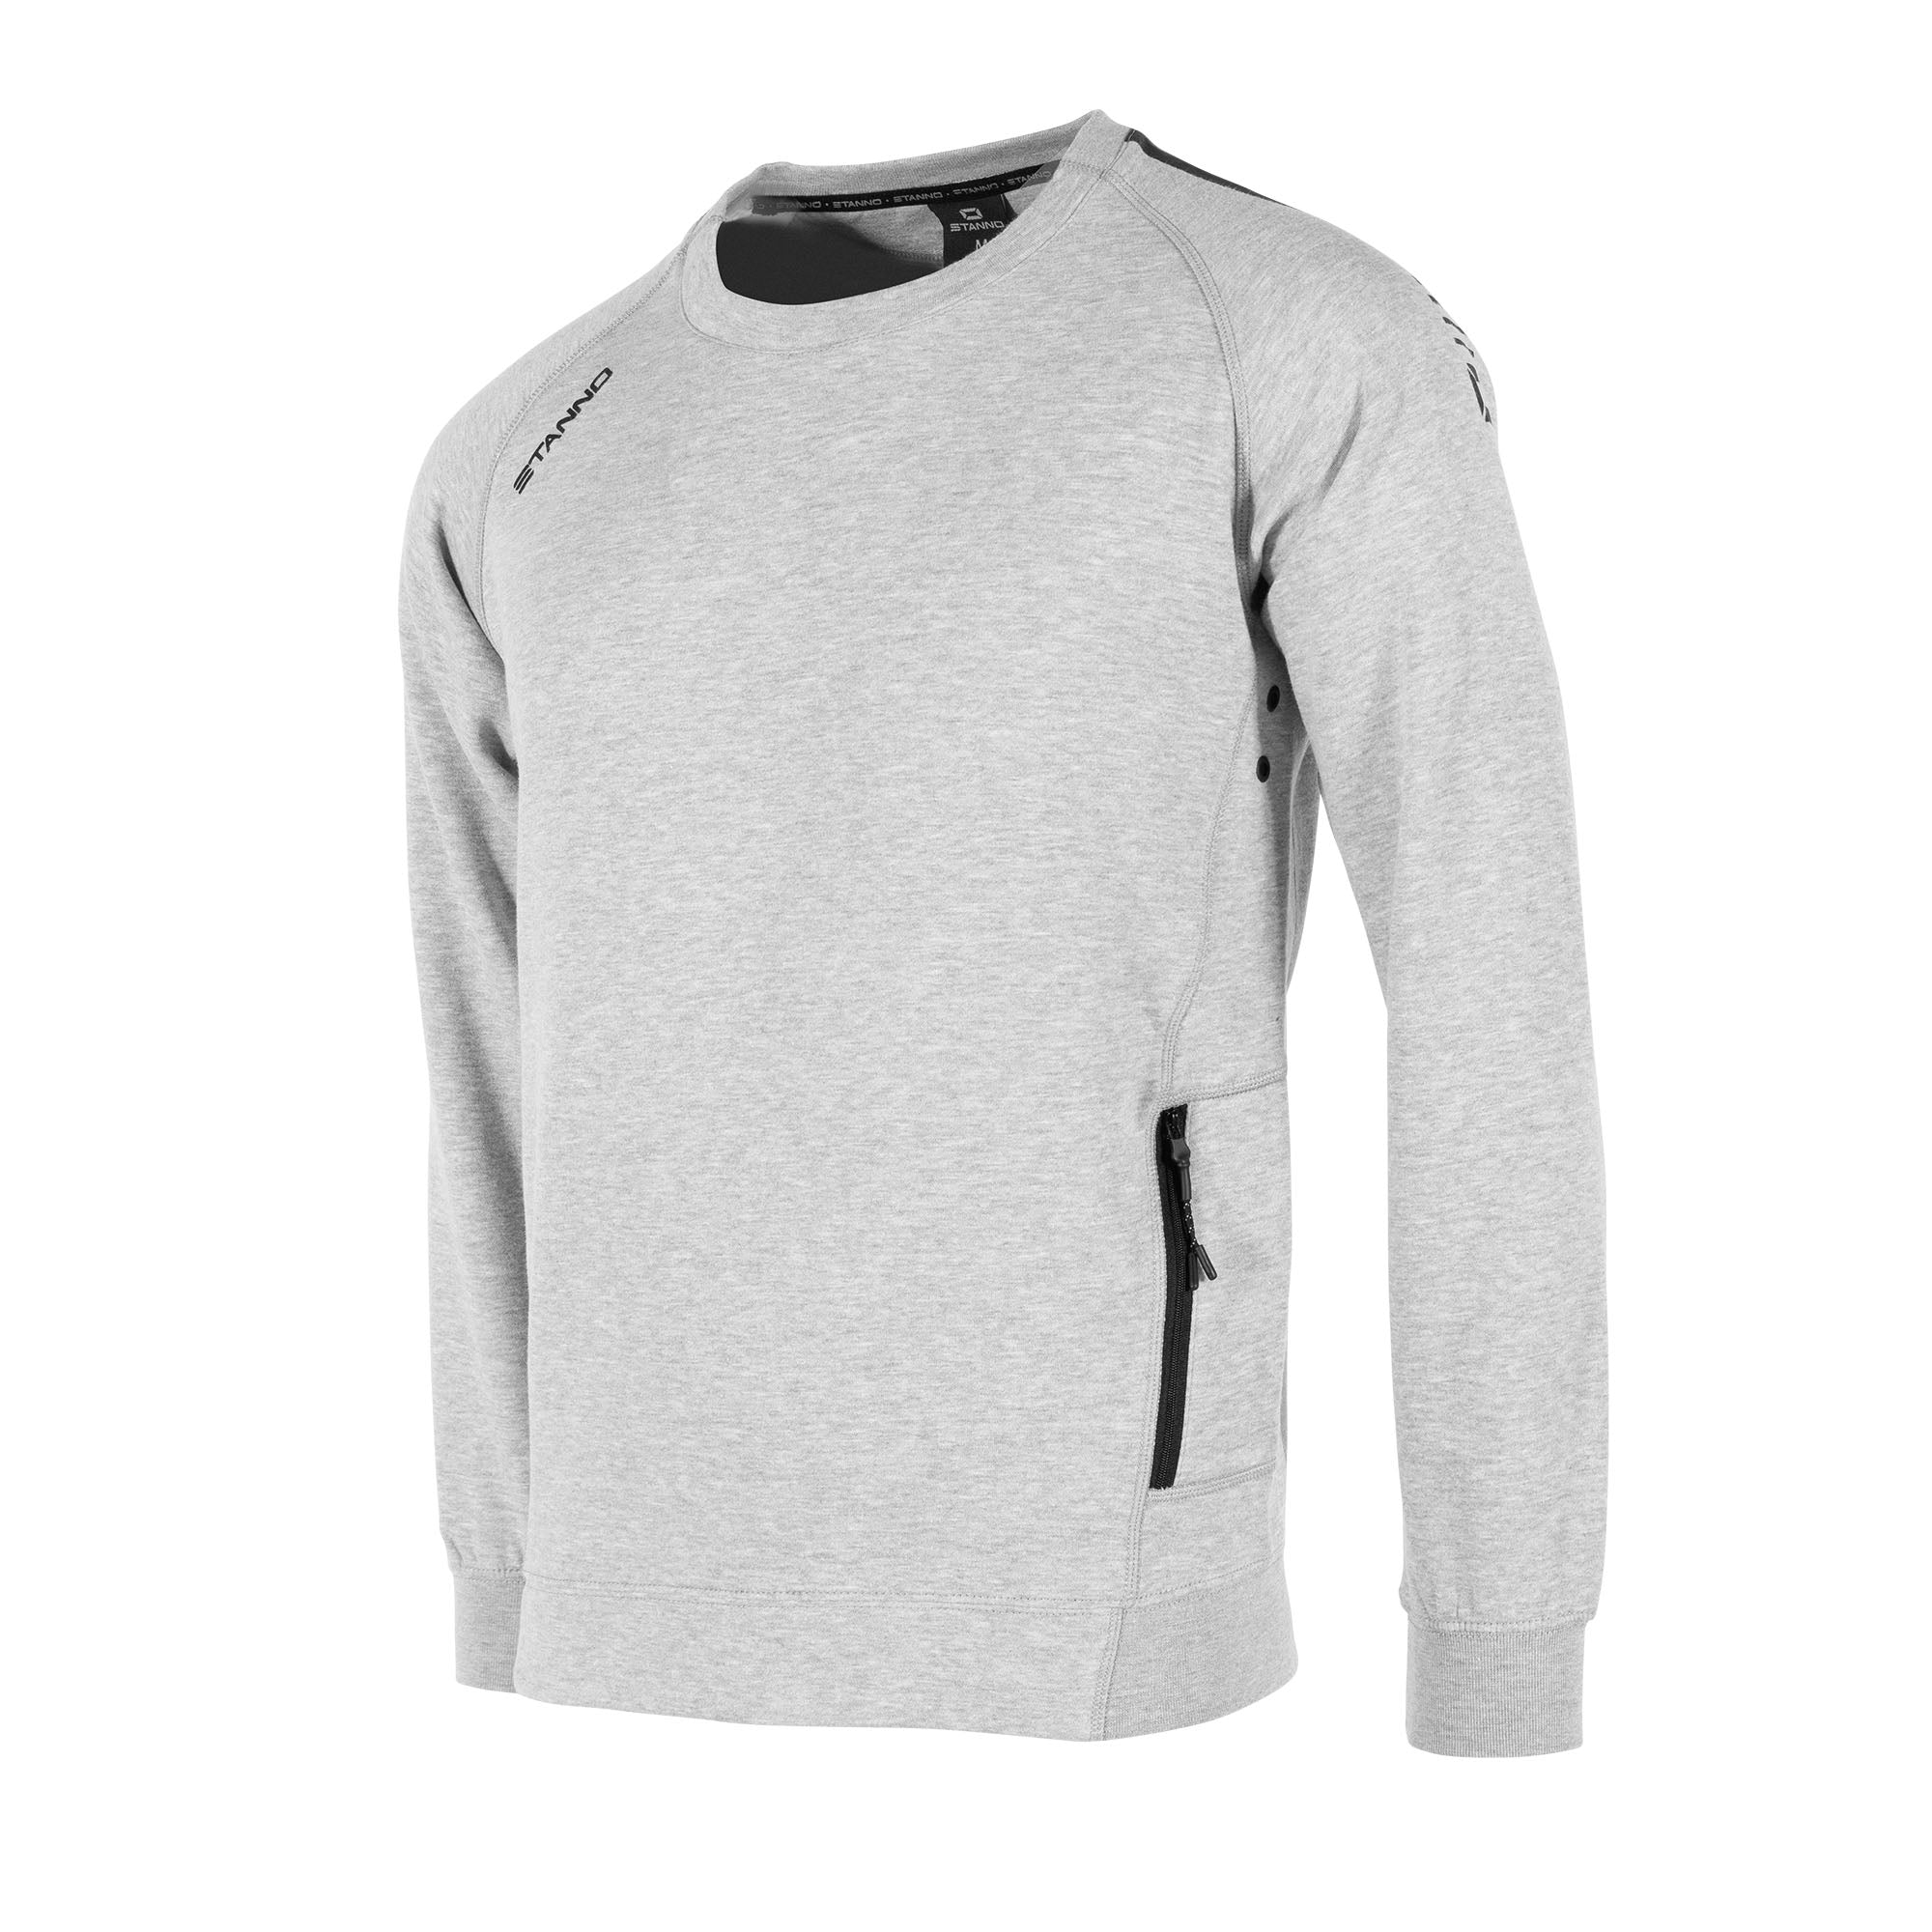 Front view of Stanno Ease crewneck in grey with raglan sleeve. Printed black logo on shoulder.